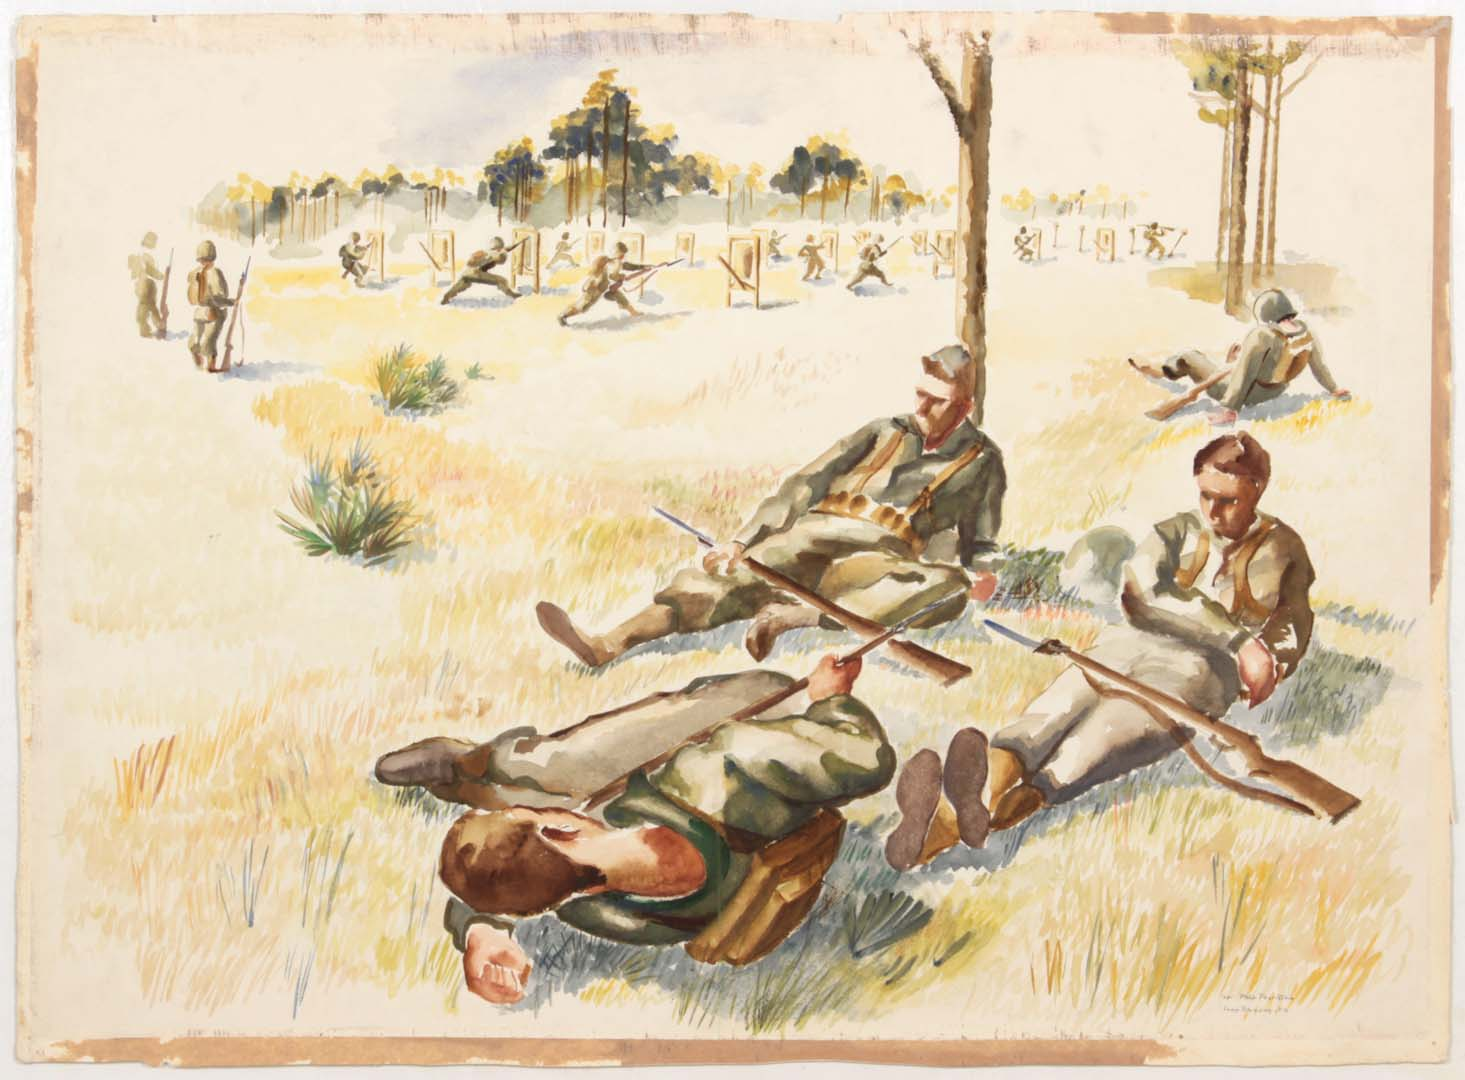 1944 Training in Camp Blanding Florida (Soldiers resting